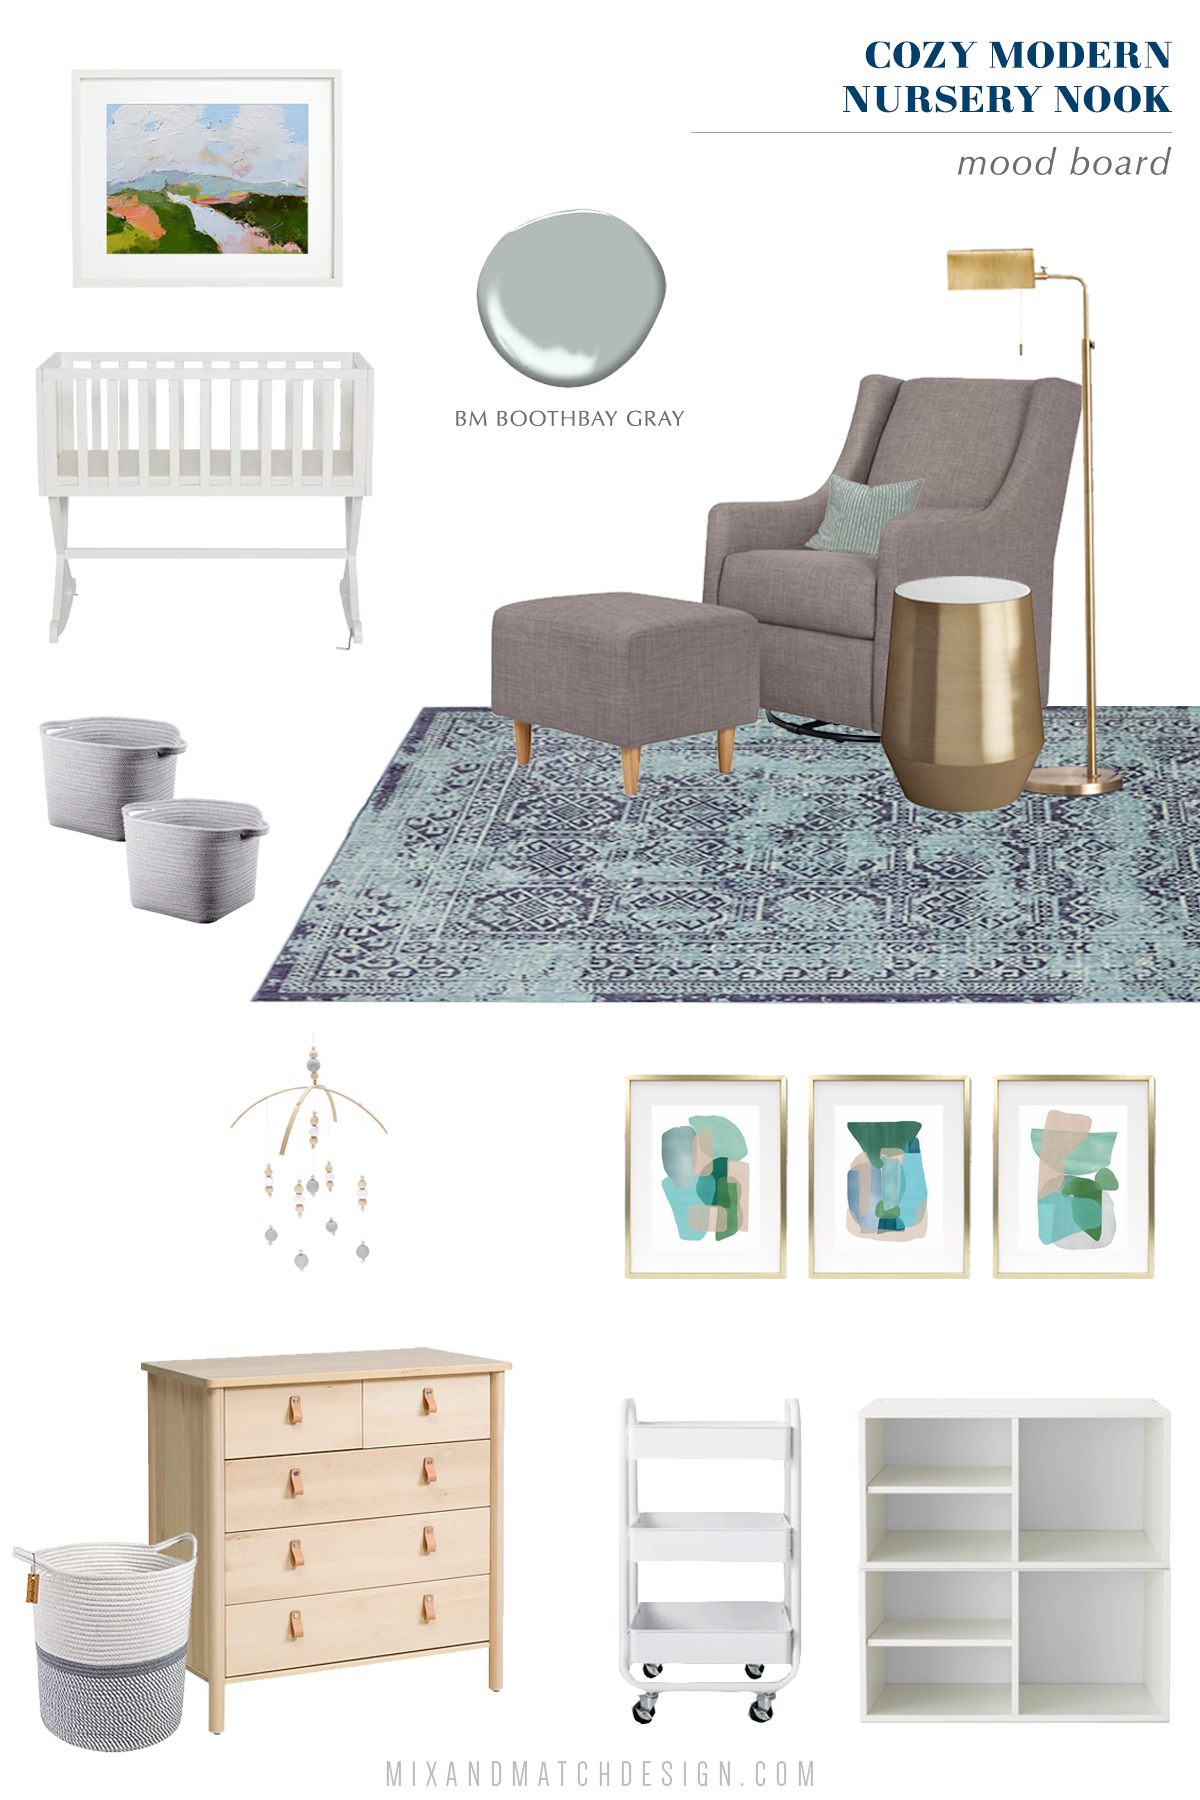 Cozy-Modern-Nursery-Nook-Mood-Board.png